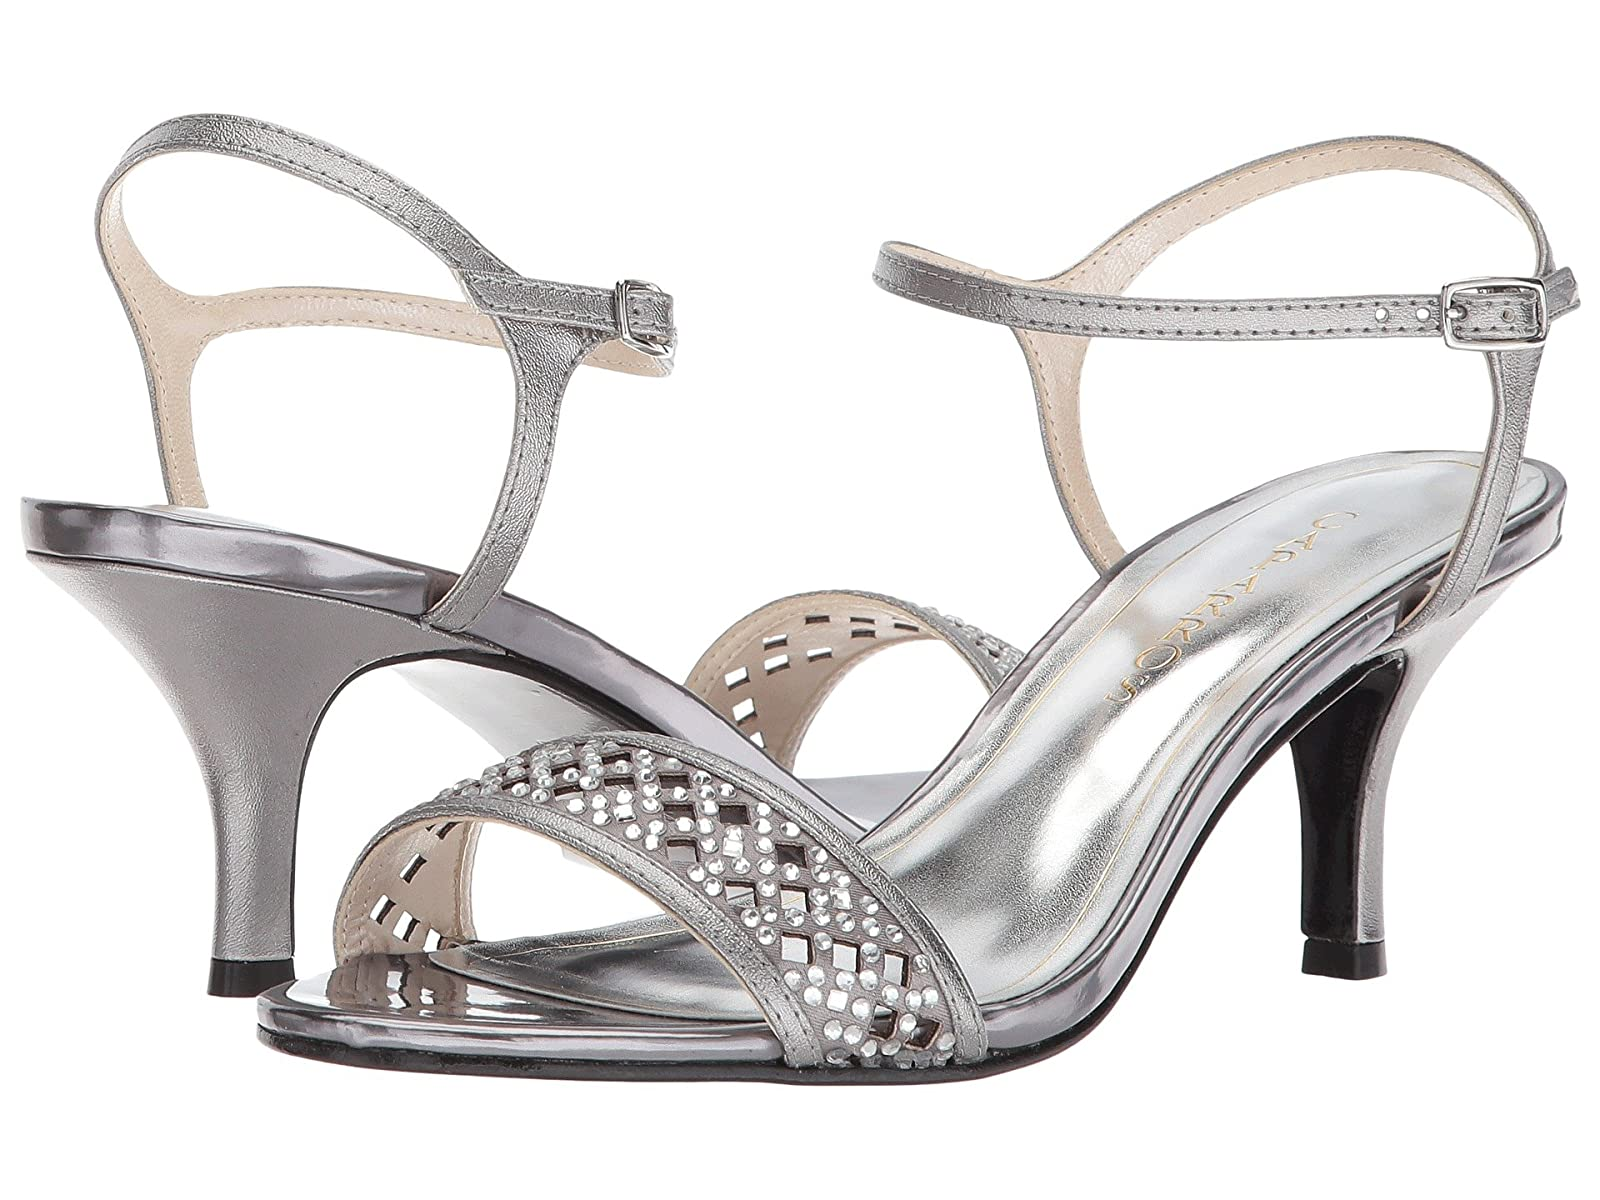 Caparros MitchellCheap and distinctive eye-catching shoes